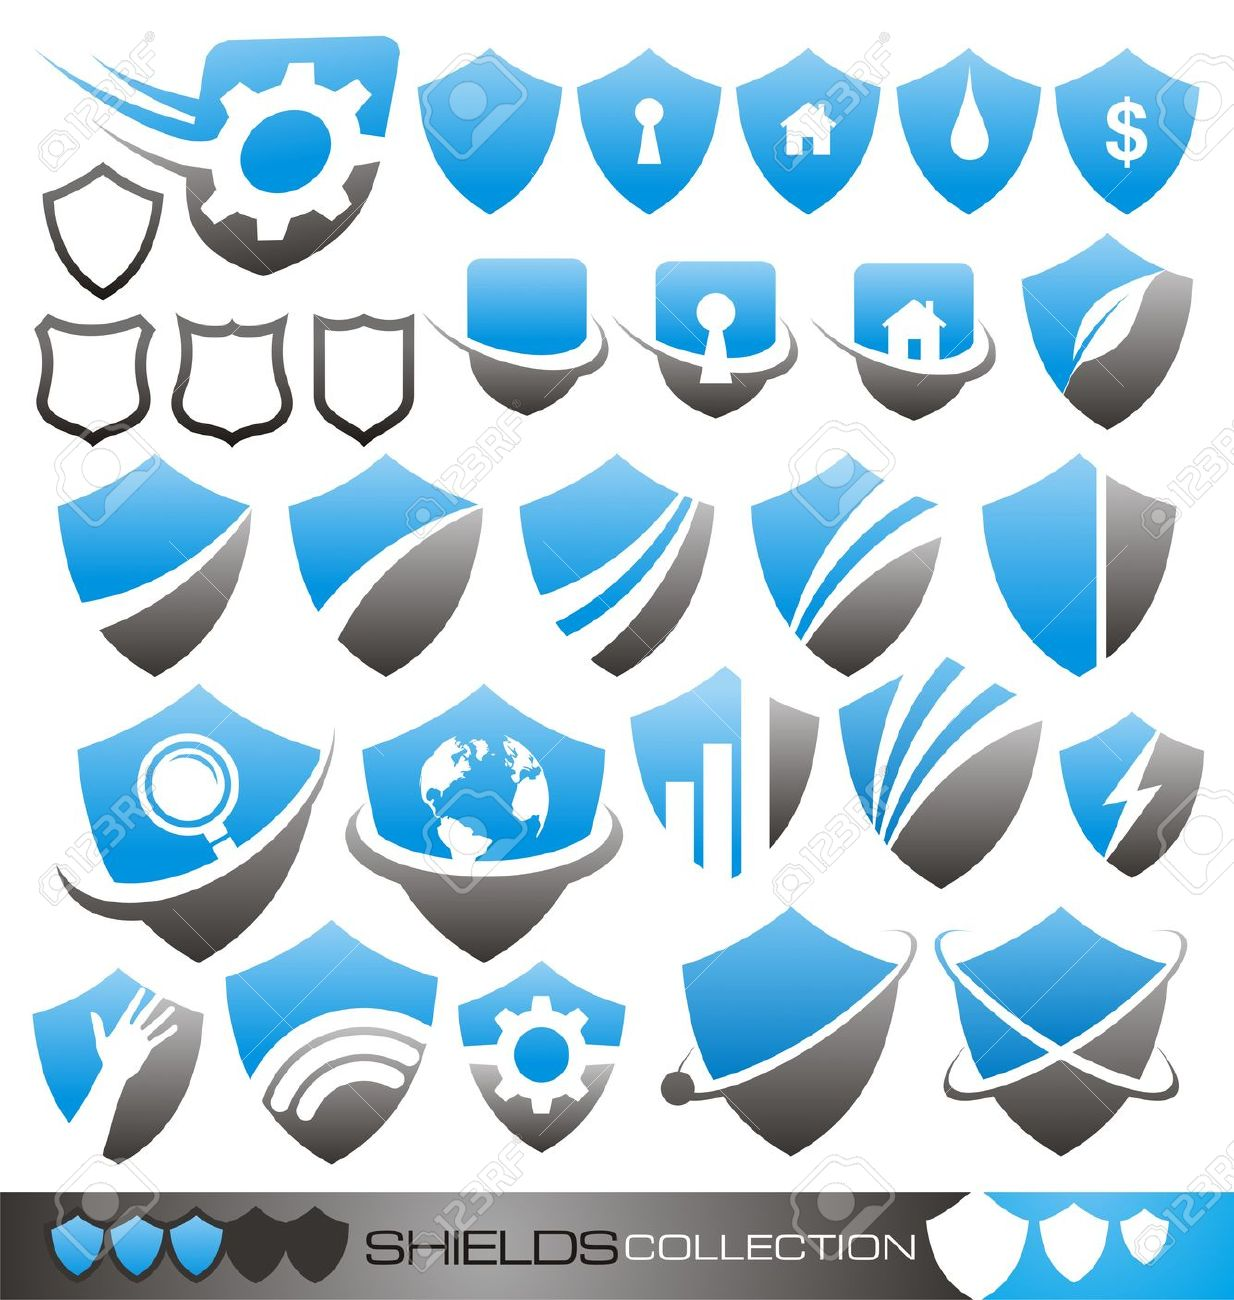 Security logo clipart sign clip black and white download Security logo clipart sign - ClipartFest clip black and white download